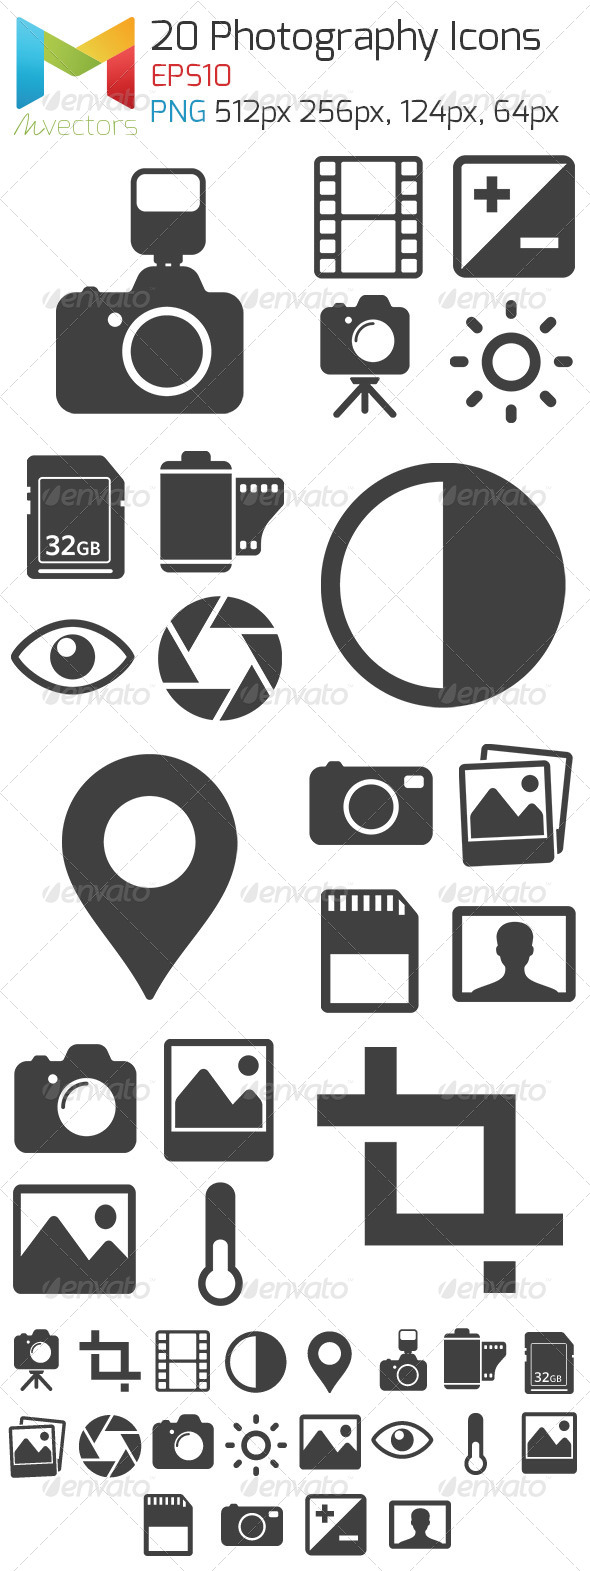 20 Vector Photography Icons and glyphs